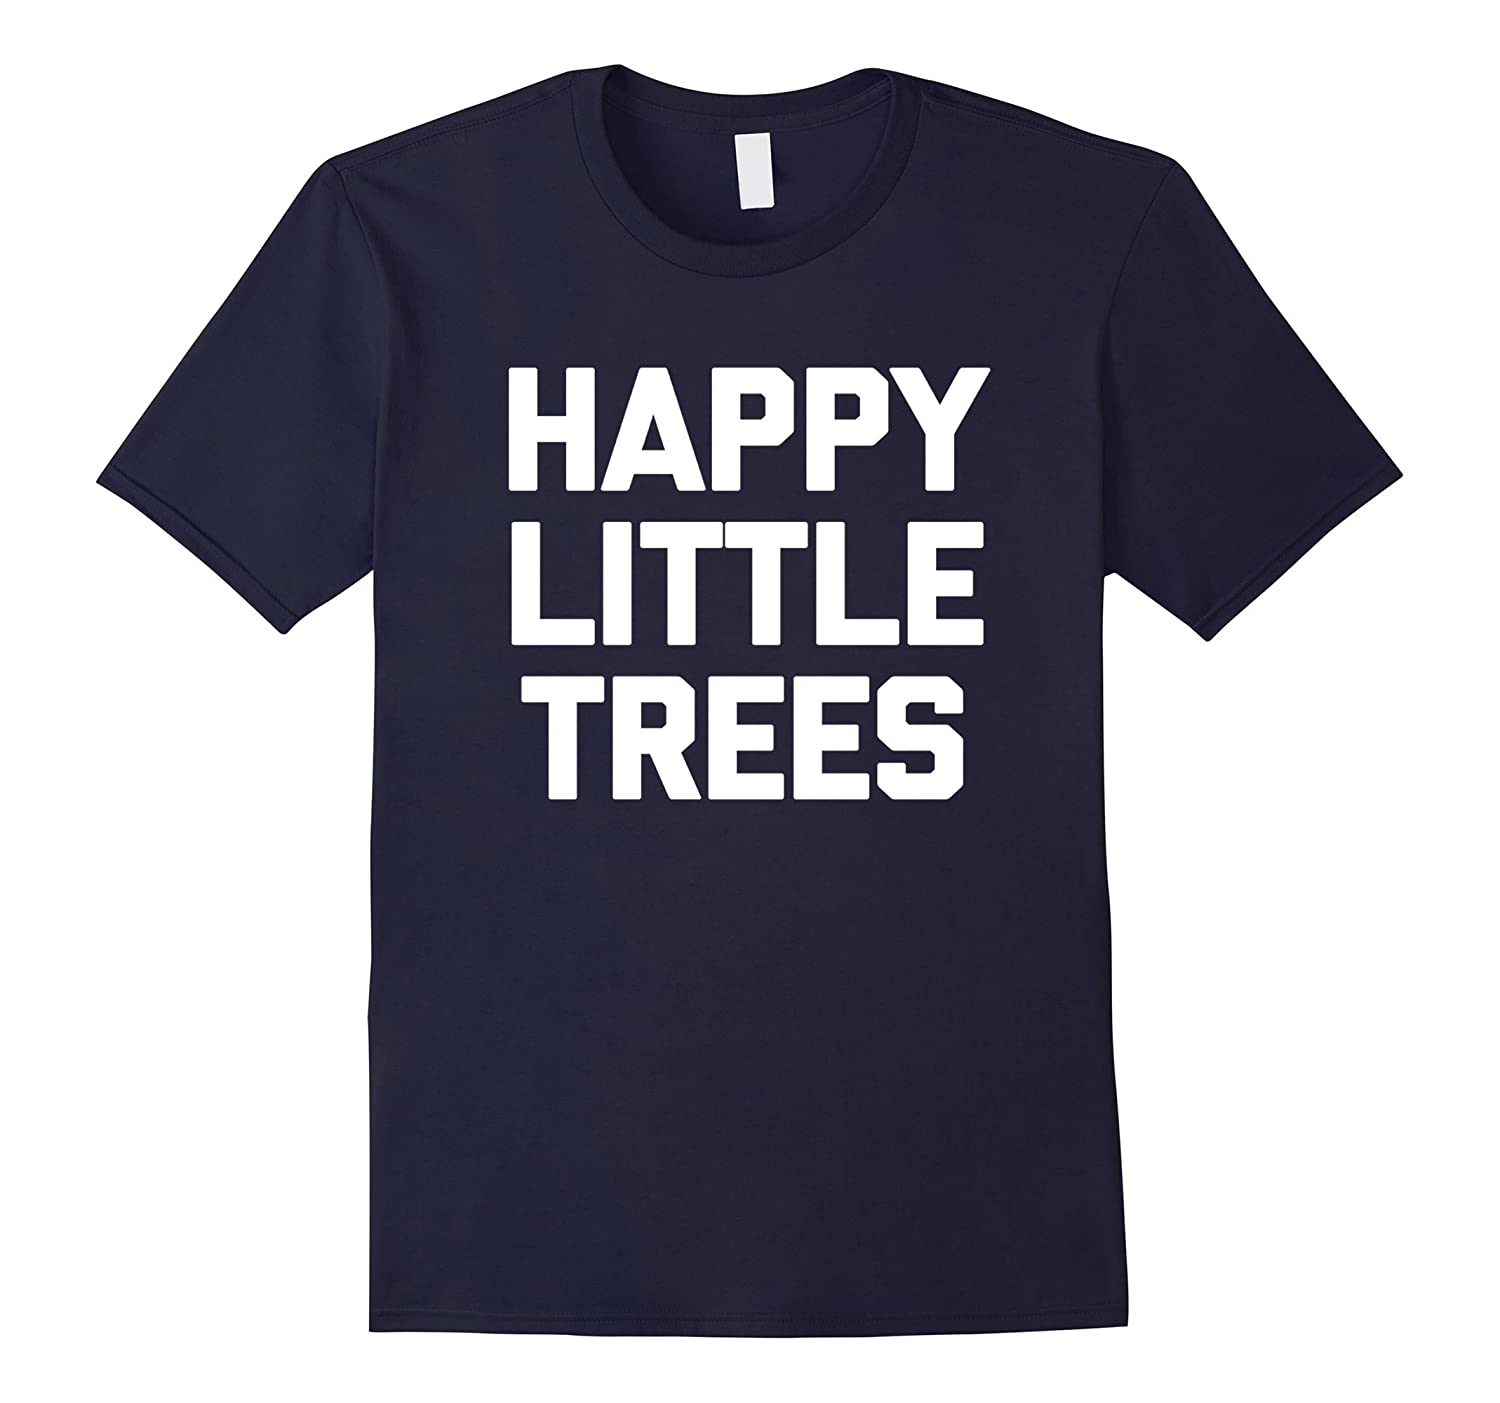 Happy Little Trees T-Shirt funny saying sarcastic novelty